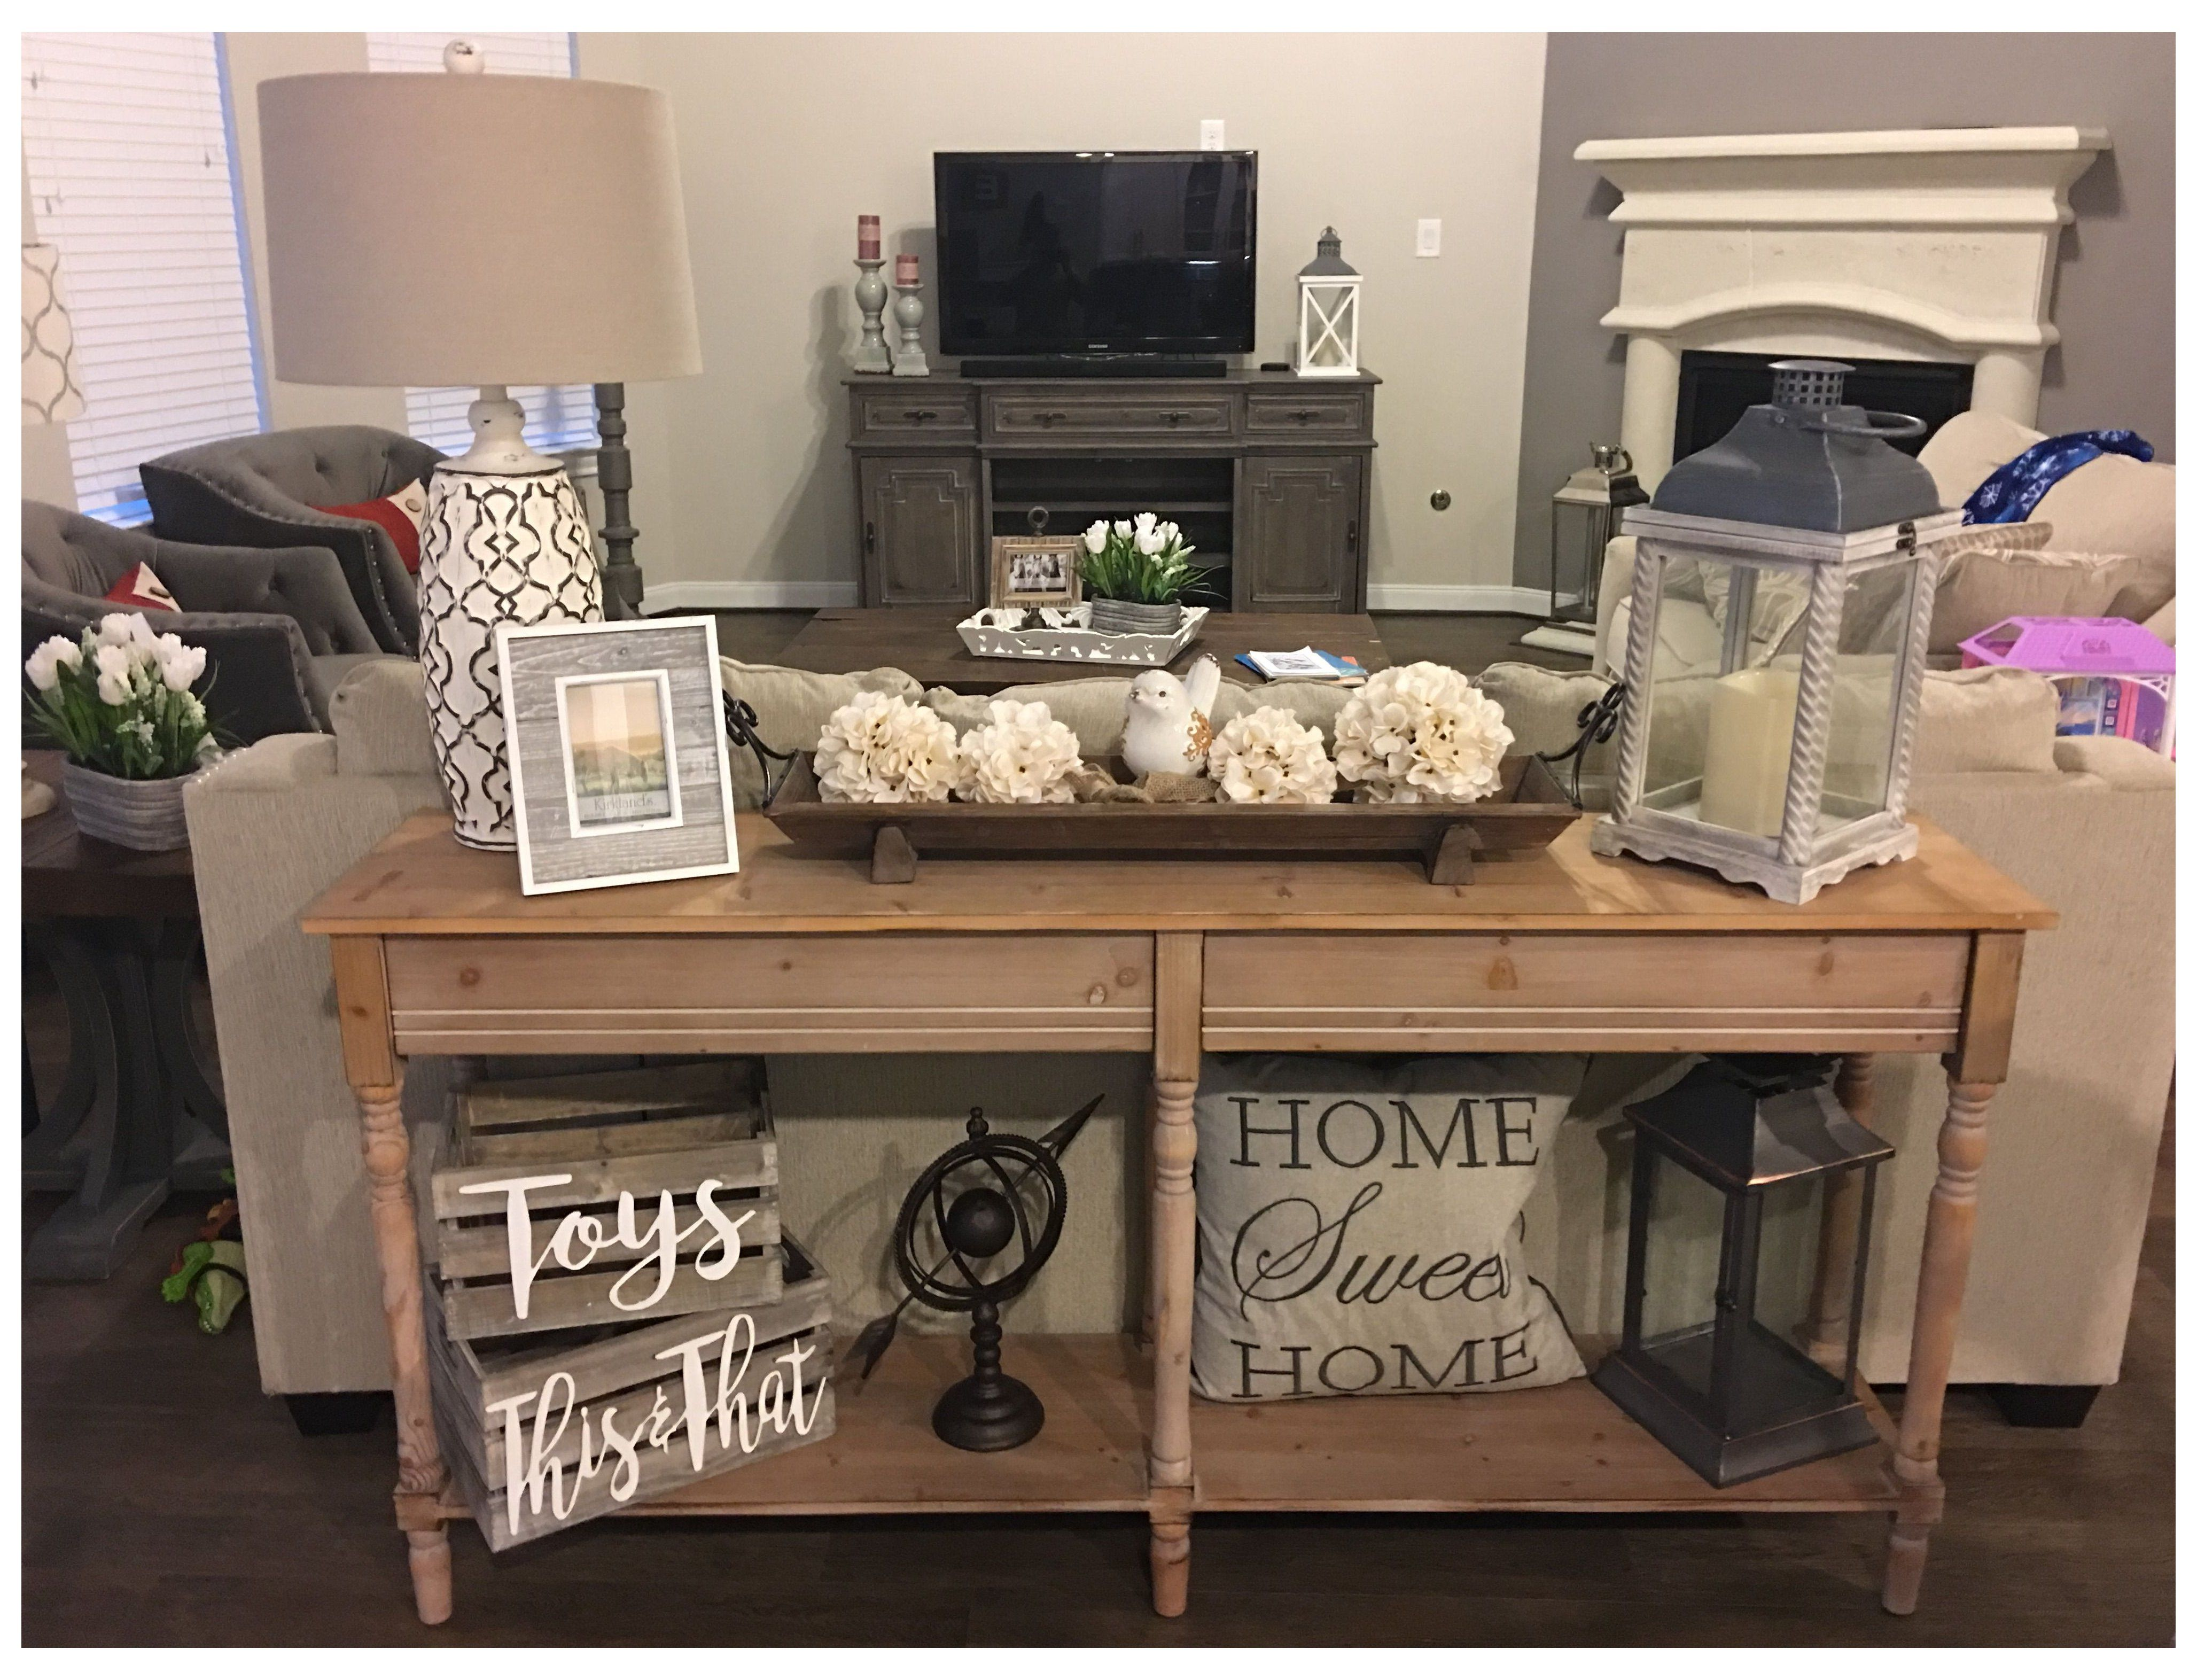 Sofa Table Behind Couch Decor Ideas In 2020 Table Decor Living Room Sofa Table Decor Farmhouse Console Table